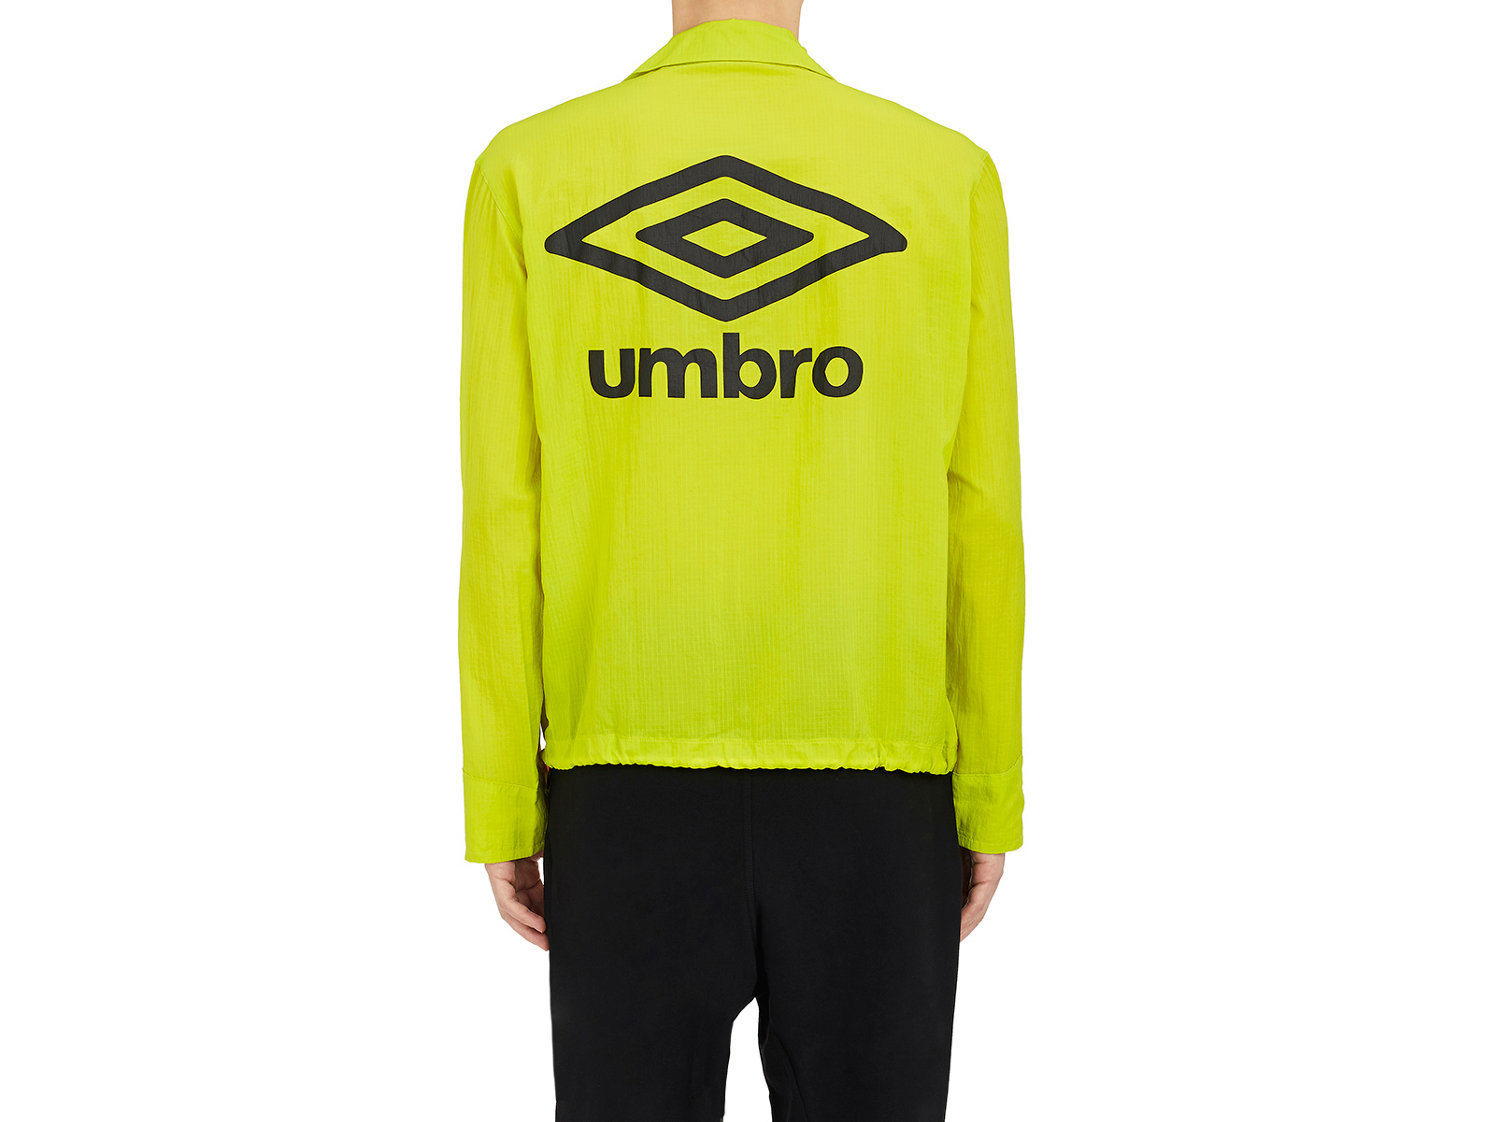 off-white-umbro-3